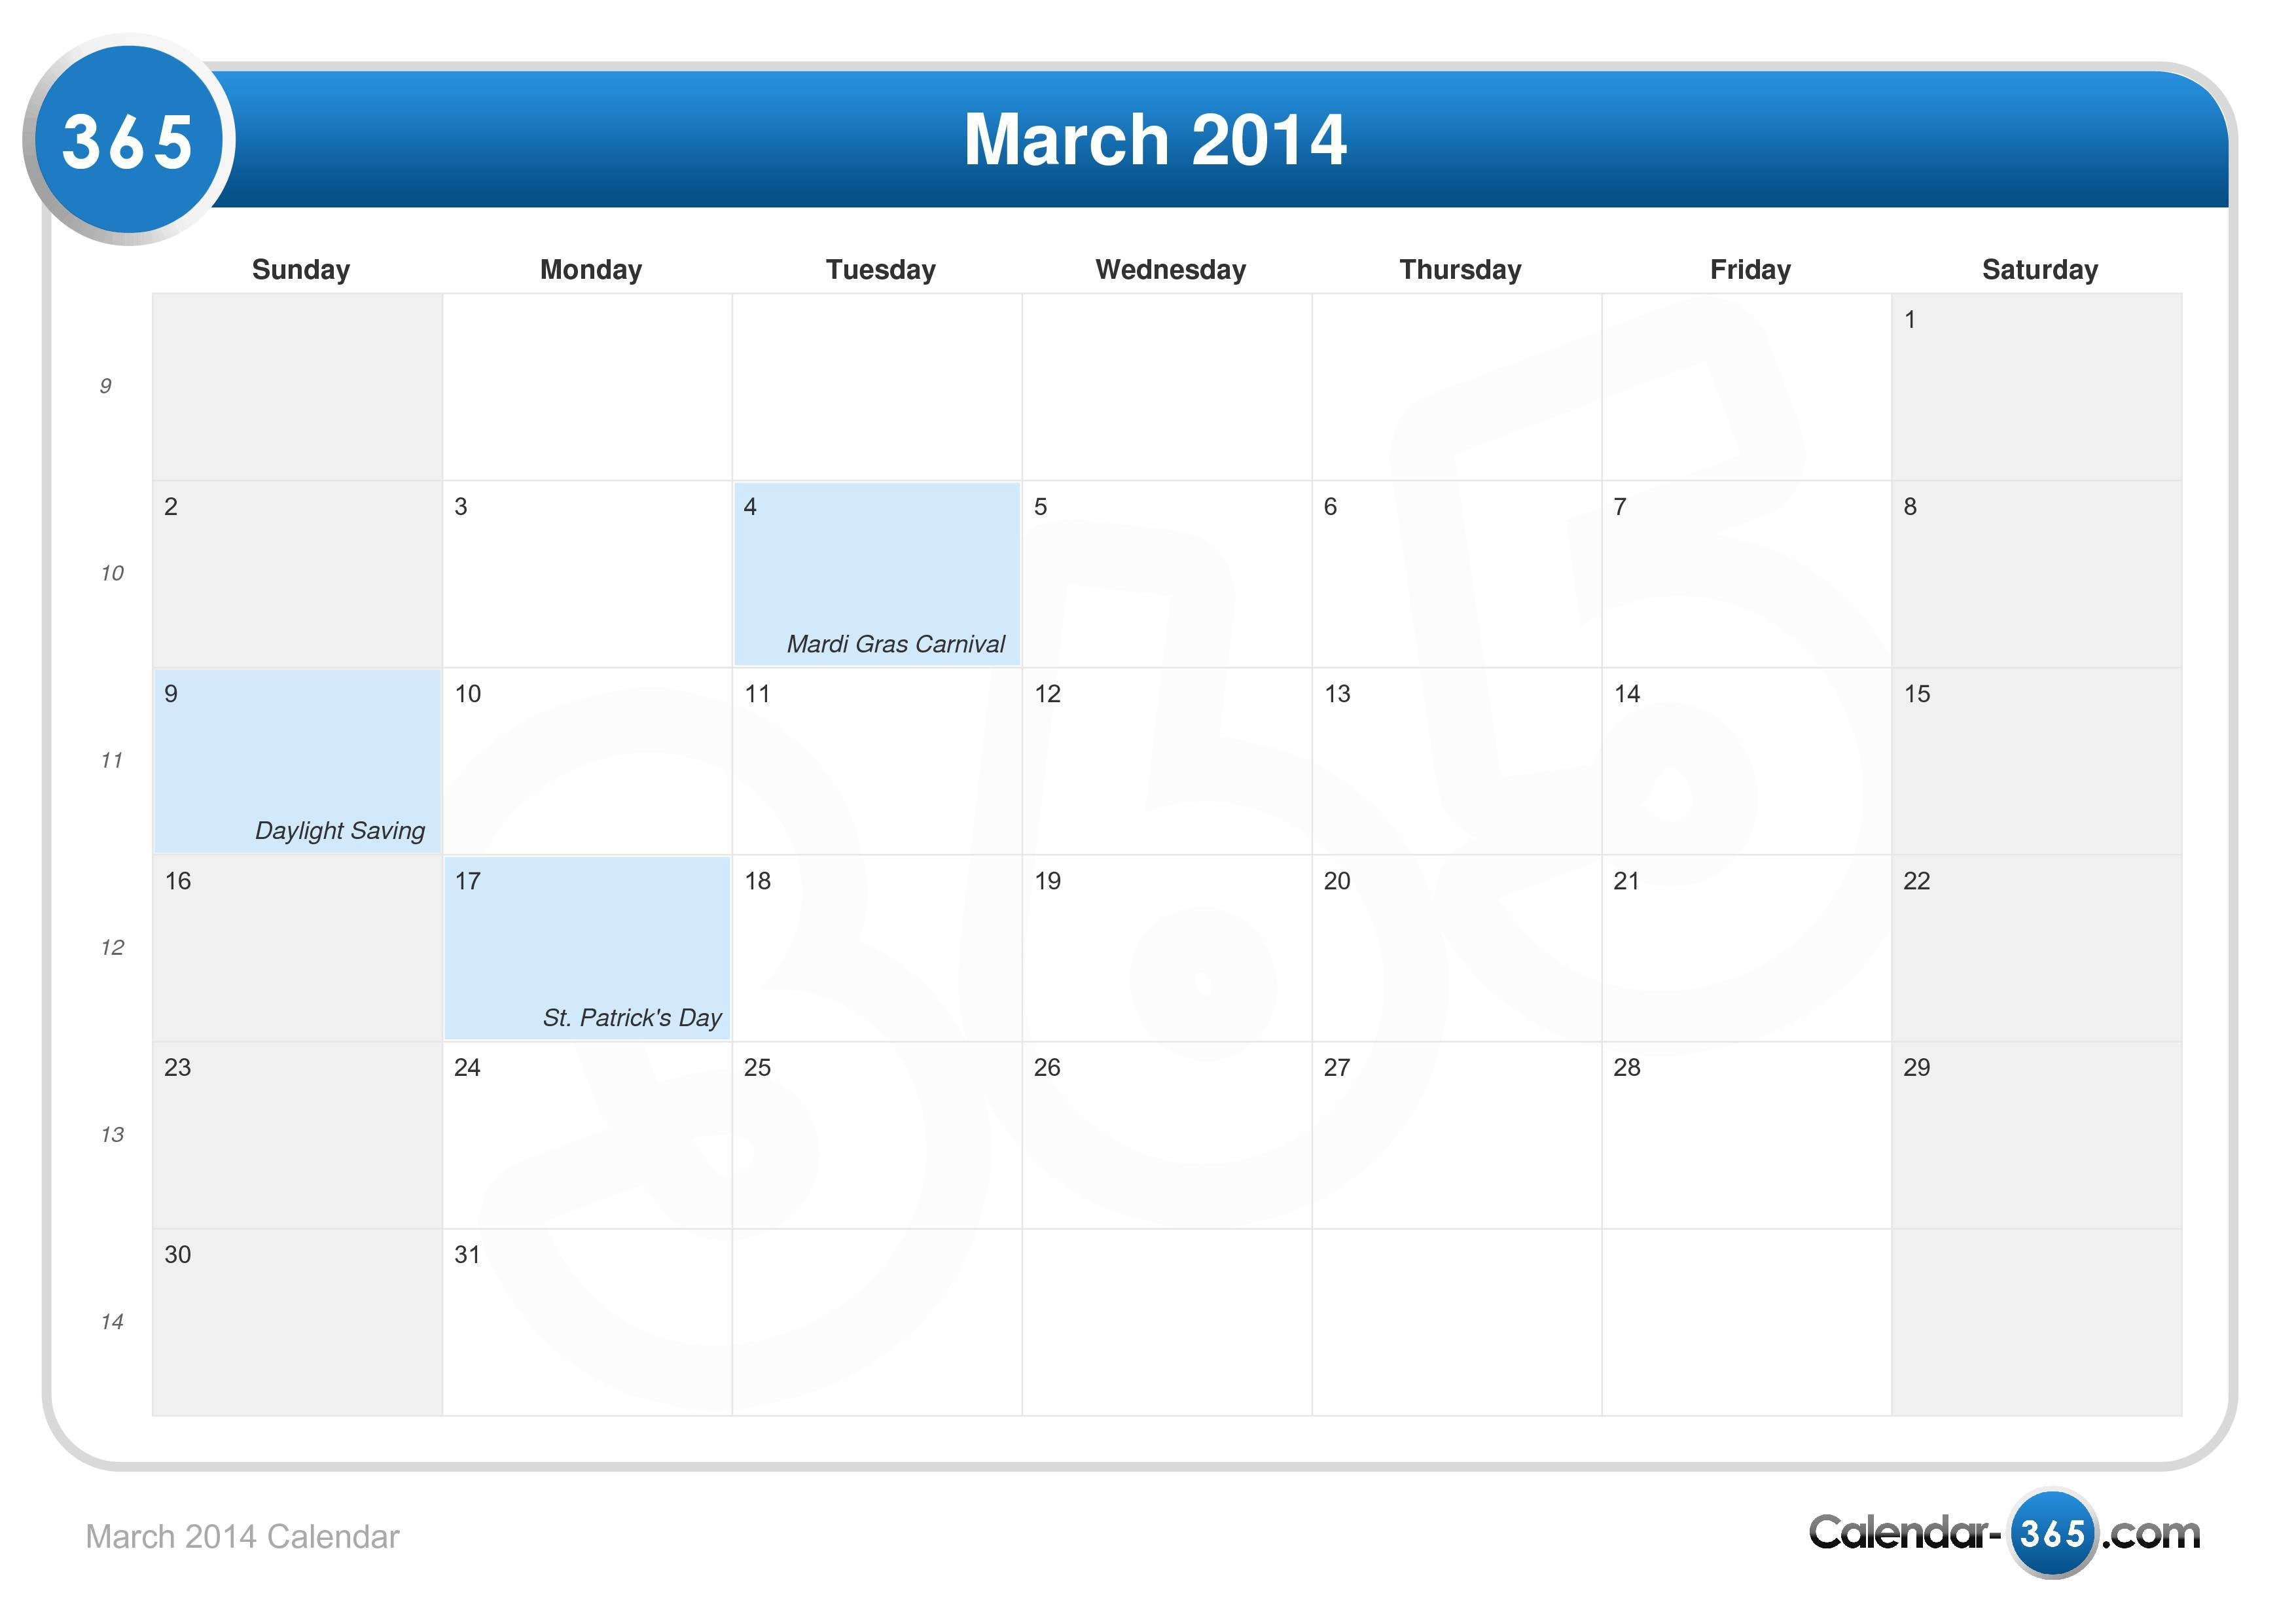 March 2014 Calendar with Holidays